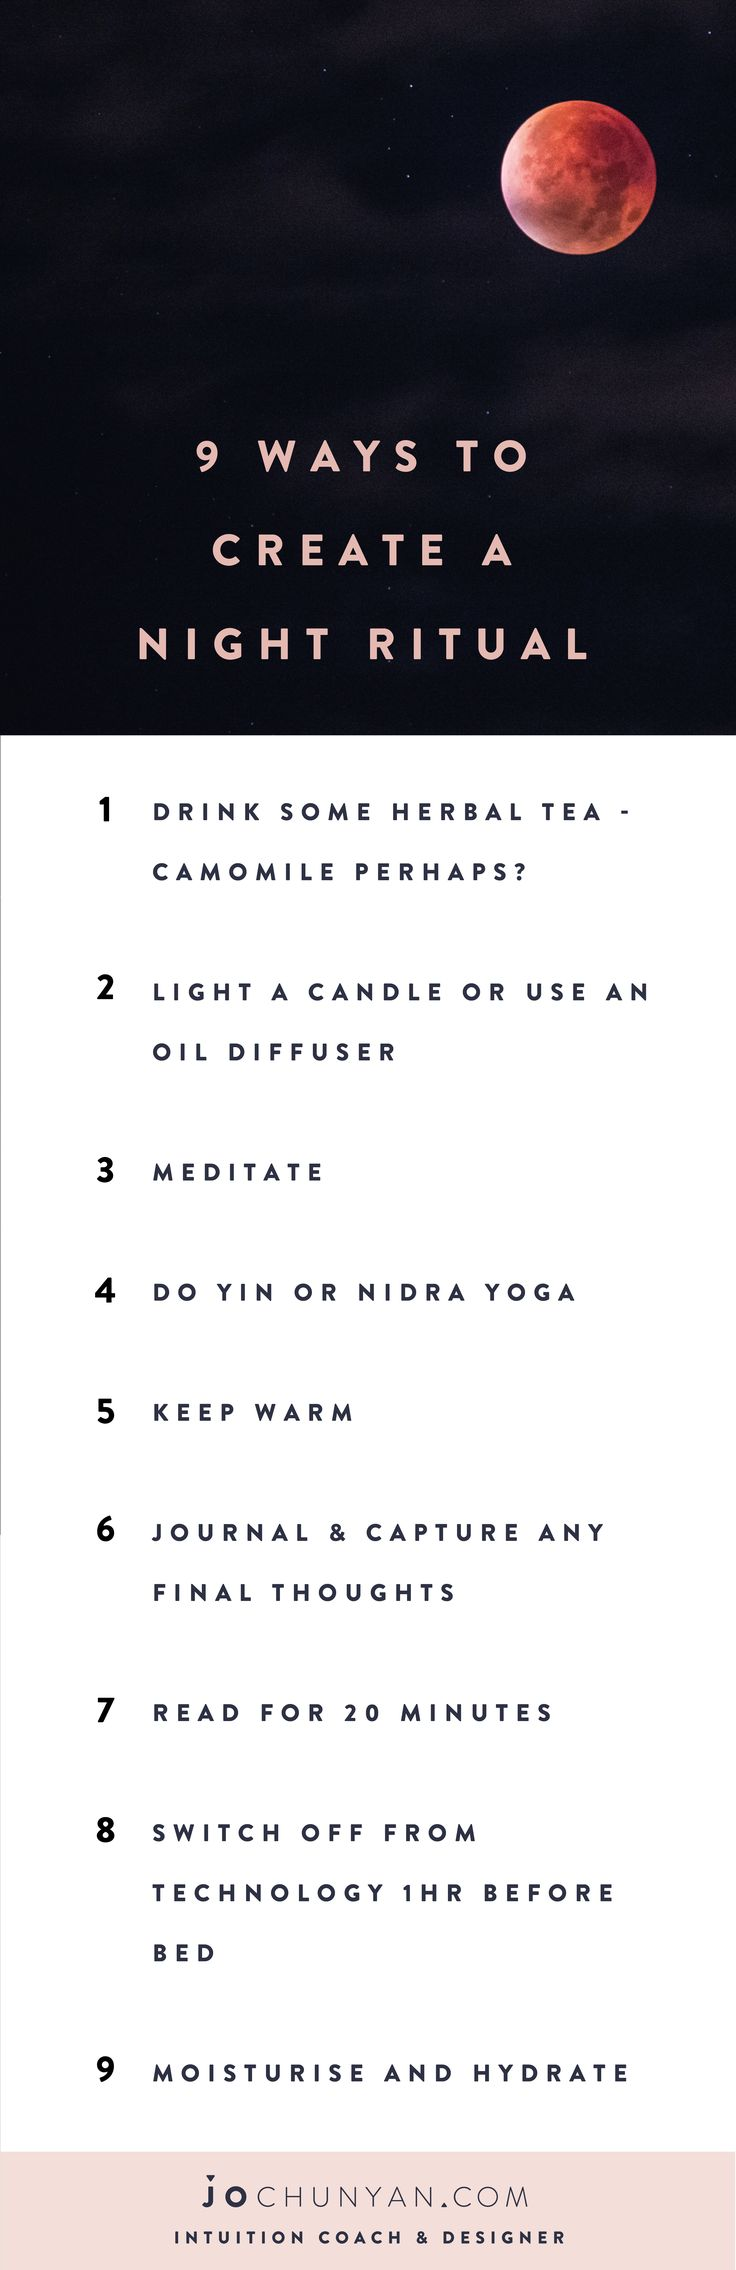 FREE PRINTABLE LIST : 9 Ways To Create A Night Ritual. For the full blog post go to www.jochunyan.com